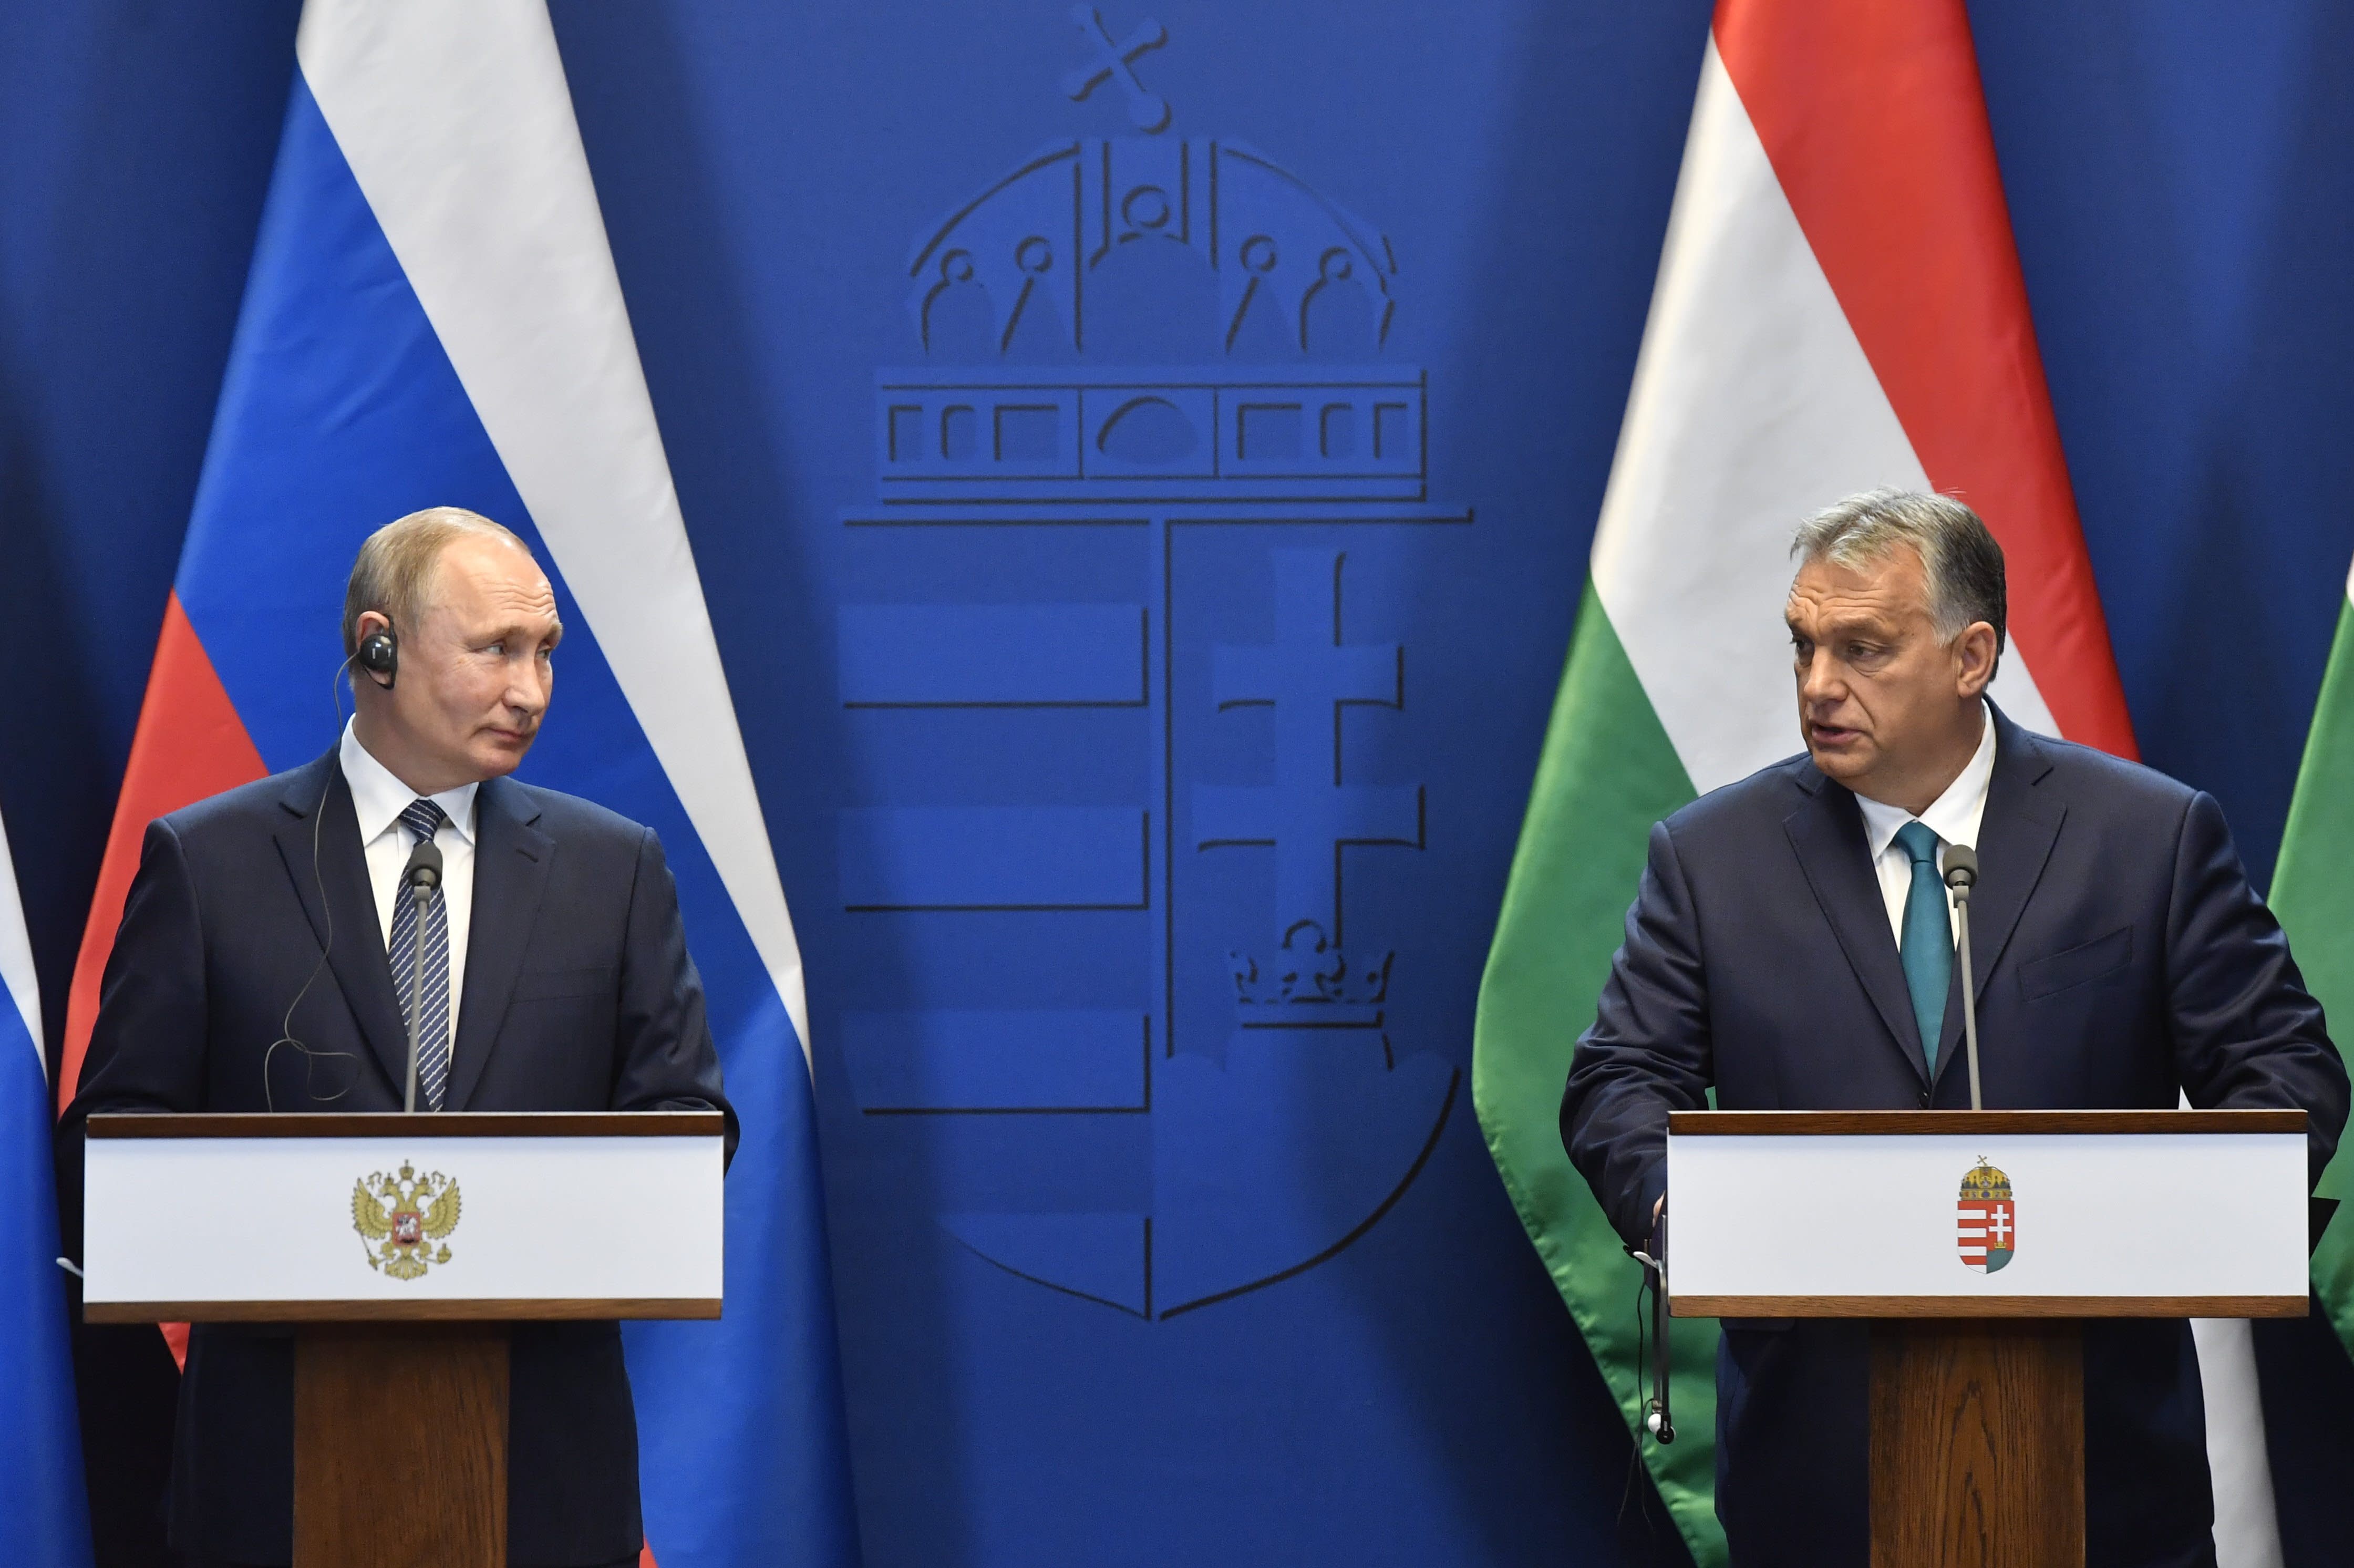 Hungarian Prime Minister Viktor Orban, right, and Russian President Vladimir Putin hold a joint press conference following their talks at the PM's office in the Castle of Buda in Budapest, Hungary, Wednesday, Oct. 30, 2019. (Zoltan Mathe/MTI via AP)